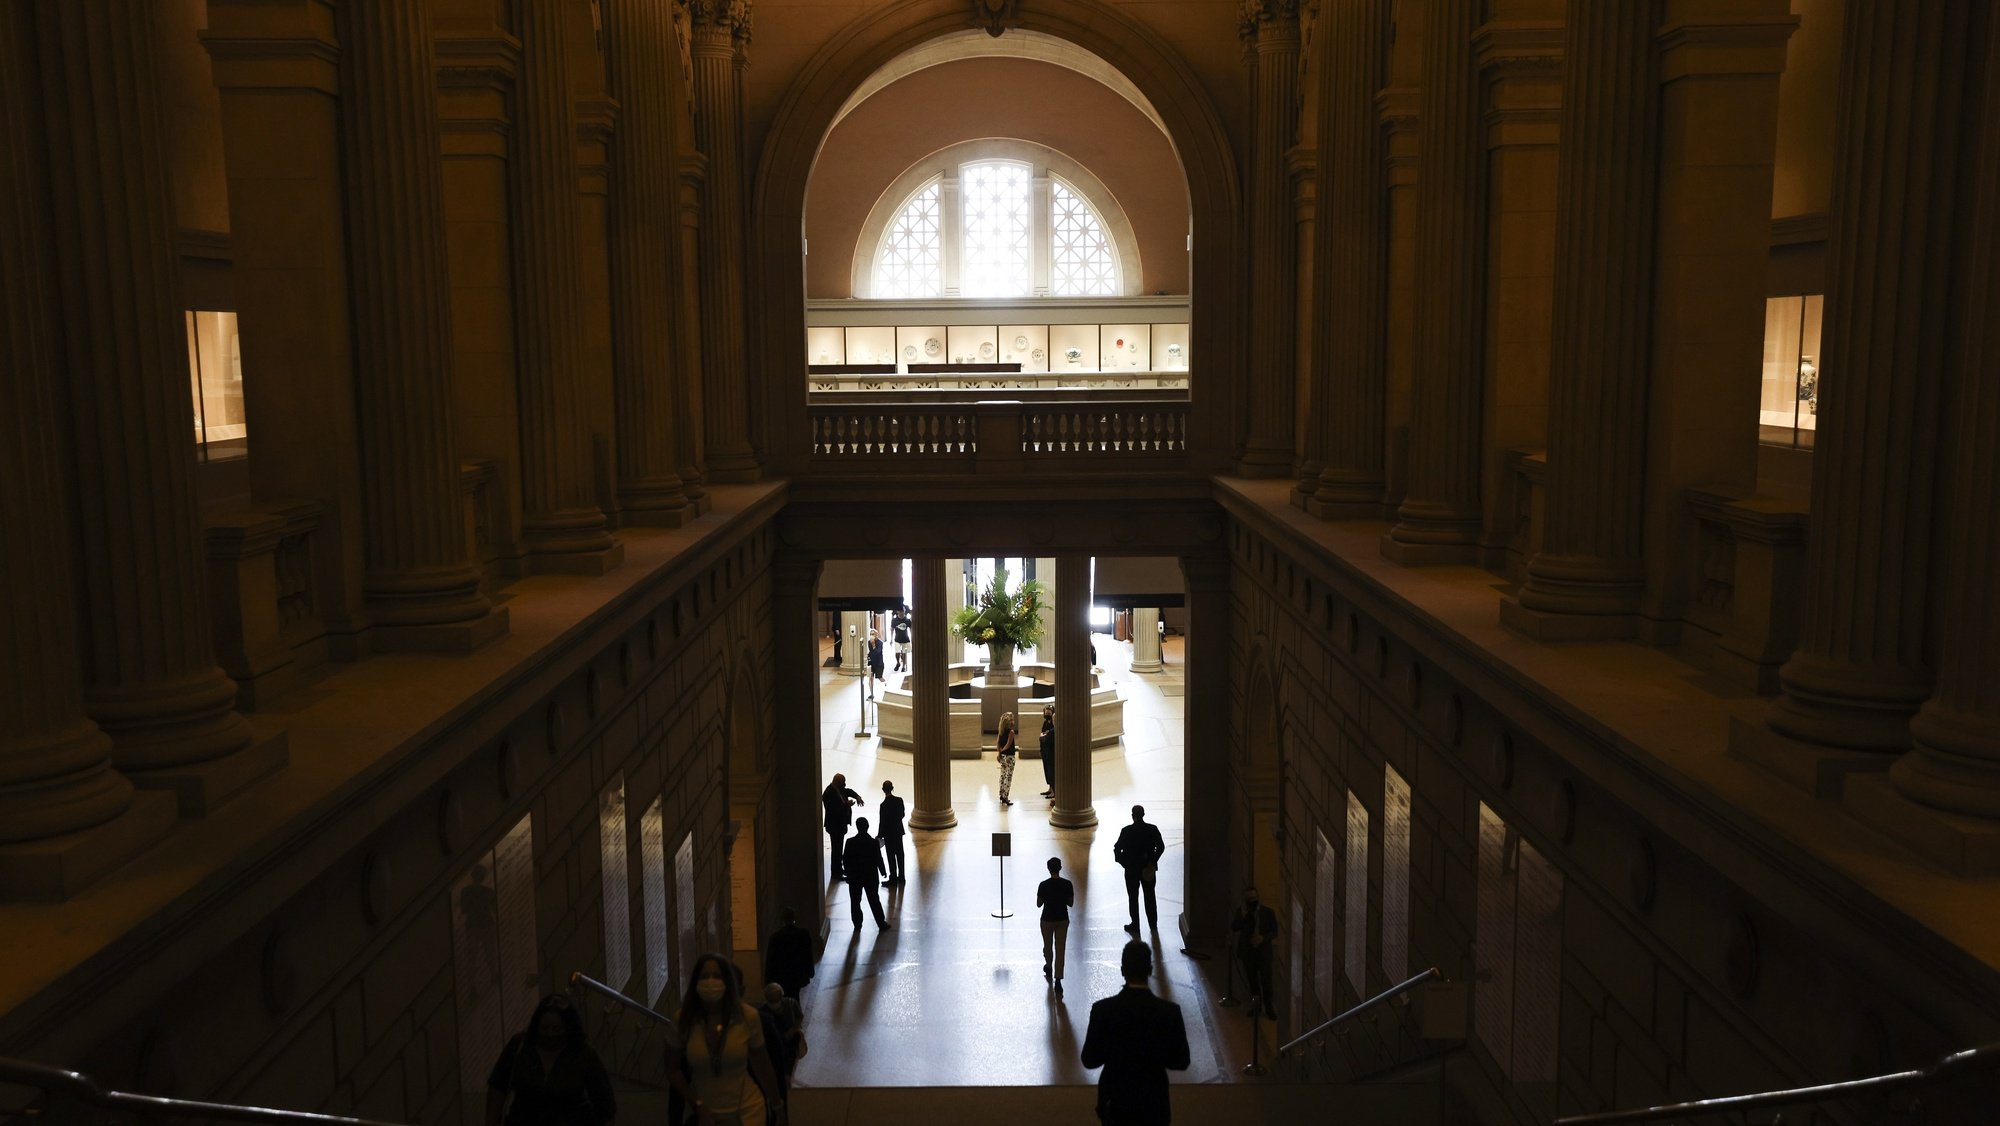 epa08630139 People are seen in the main entry of the Metropolitan Museum of Art on the first day that the museum is reopening to the public in New York, New York, USA, 27 August 2020.  The Met, along with other museums in the city, has been closed since March 2020 as a result of the coronavirus pandemic and is now reopening at 25 percent capacity.  EPA/JUSTIN LANE